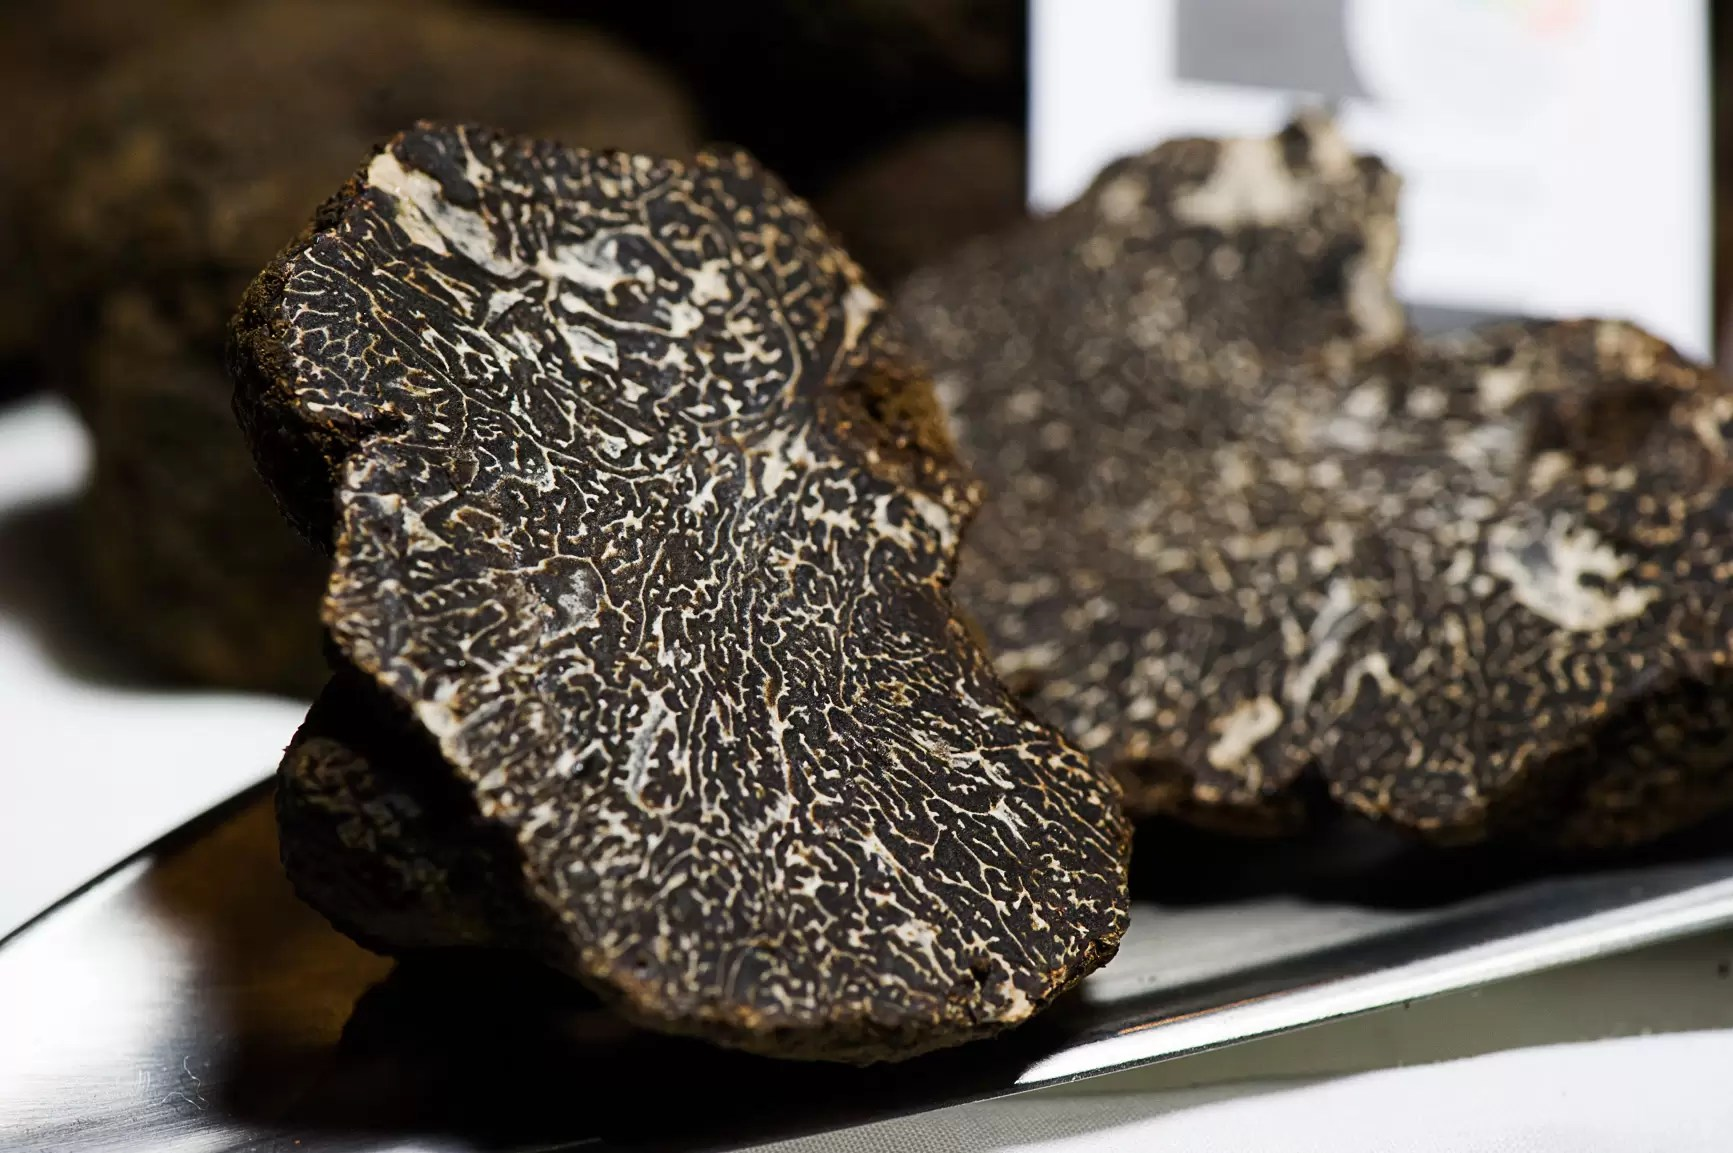 Exhibition of the Black Truffle of the Maestrat